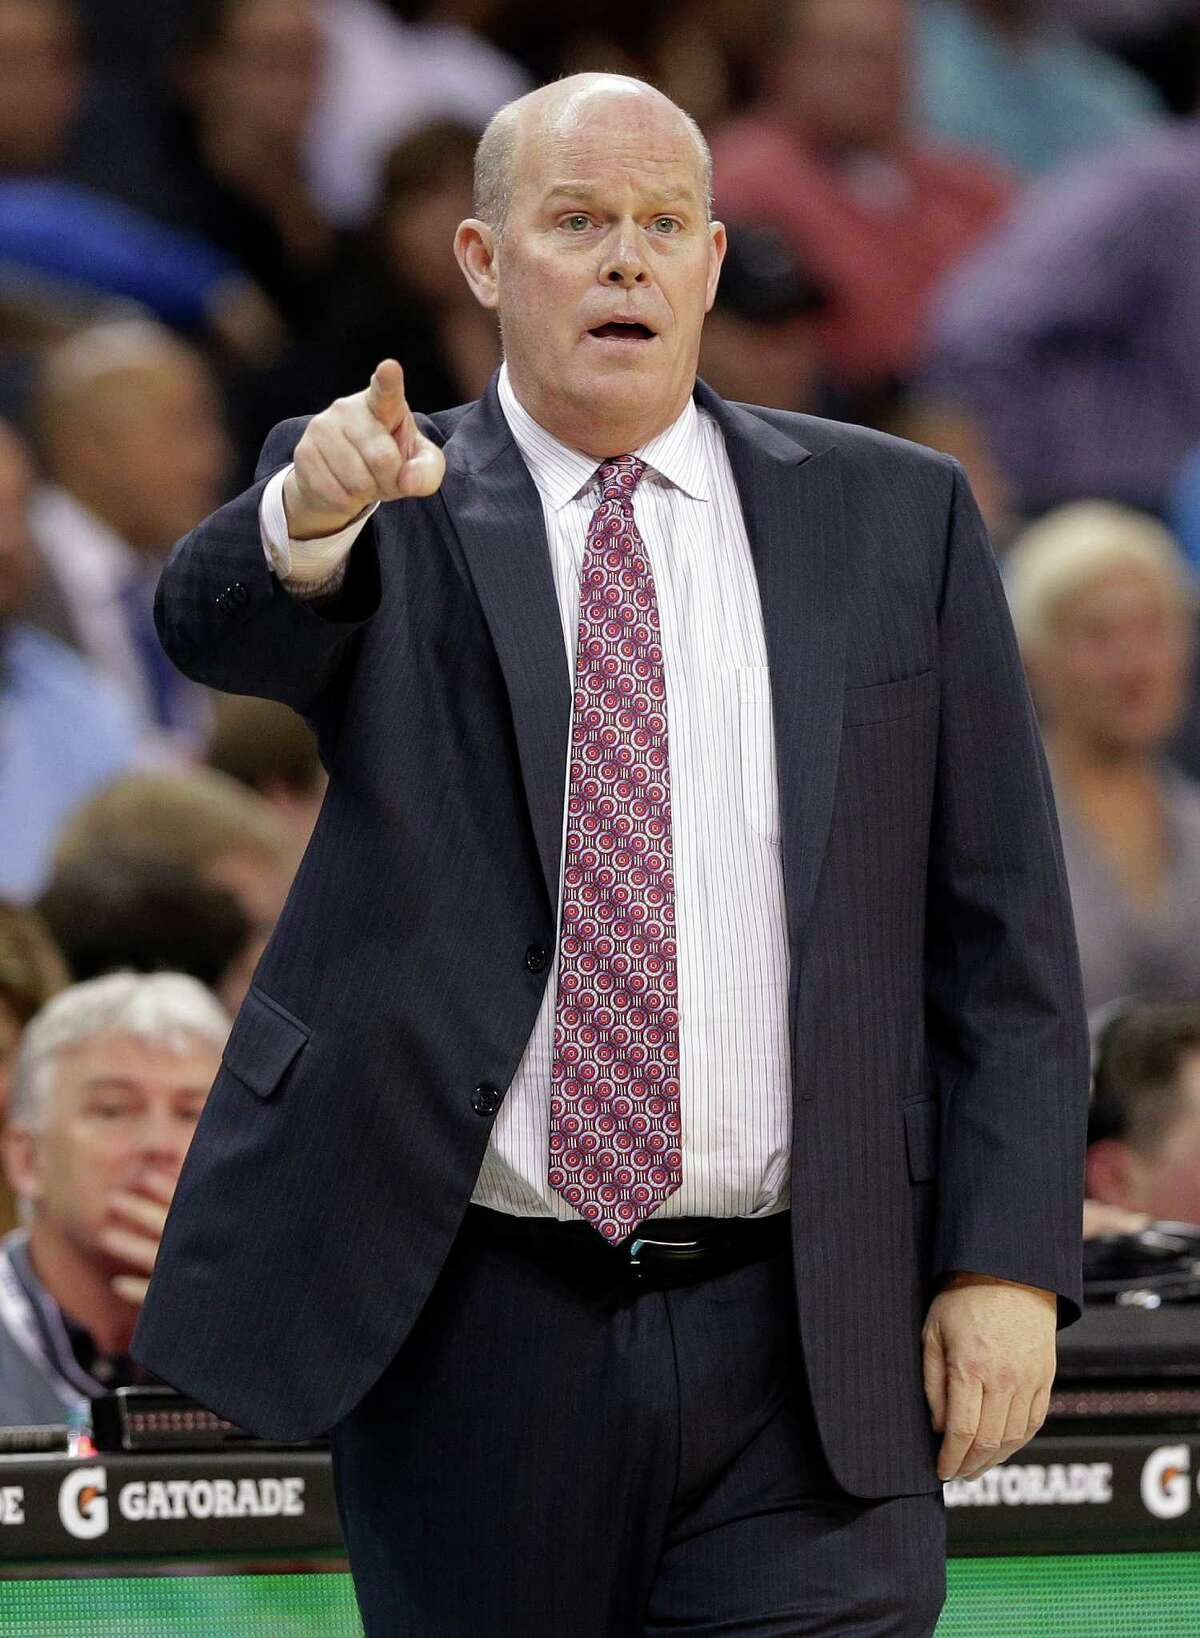 Charlotte Hornets coach Steve Clifford gestures to his players during the first half of the Hornets' NBA basketball game against the Houston Rockets in Charlotte, N.C., Monday, April 13, 2015. (AP Photo/Chuck Burton)